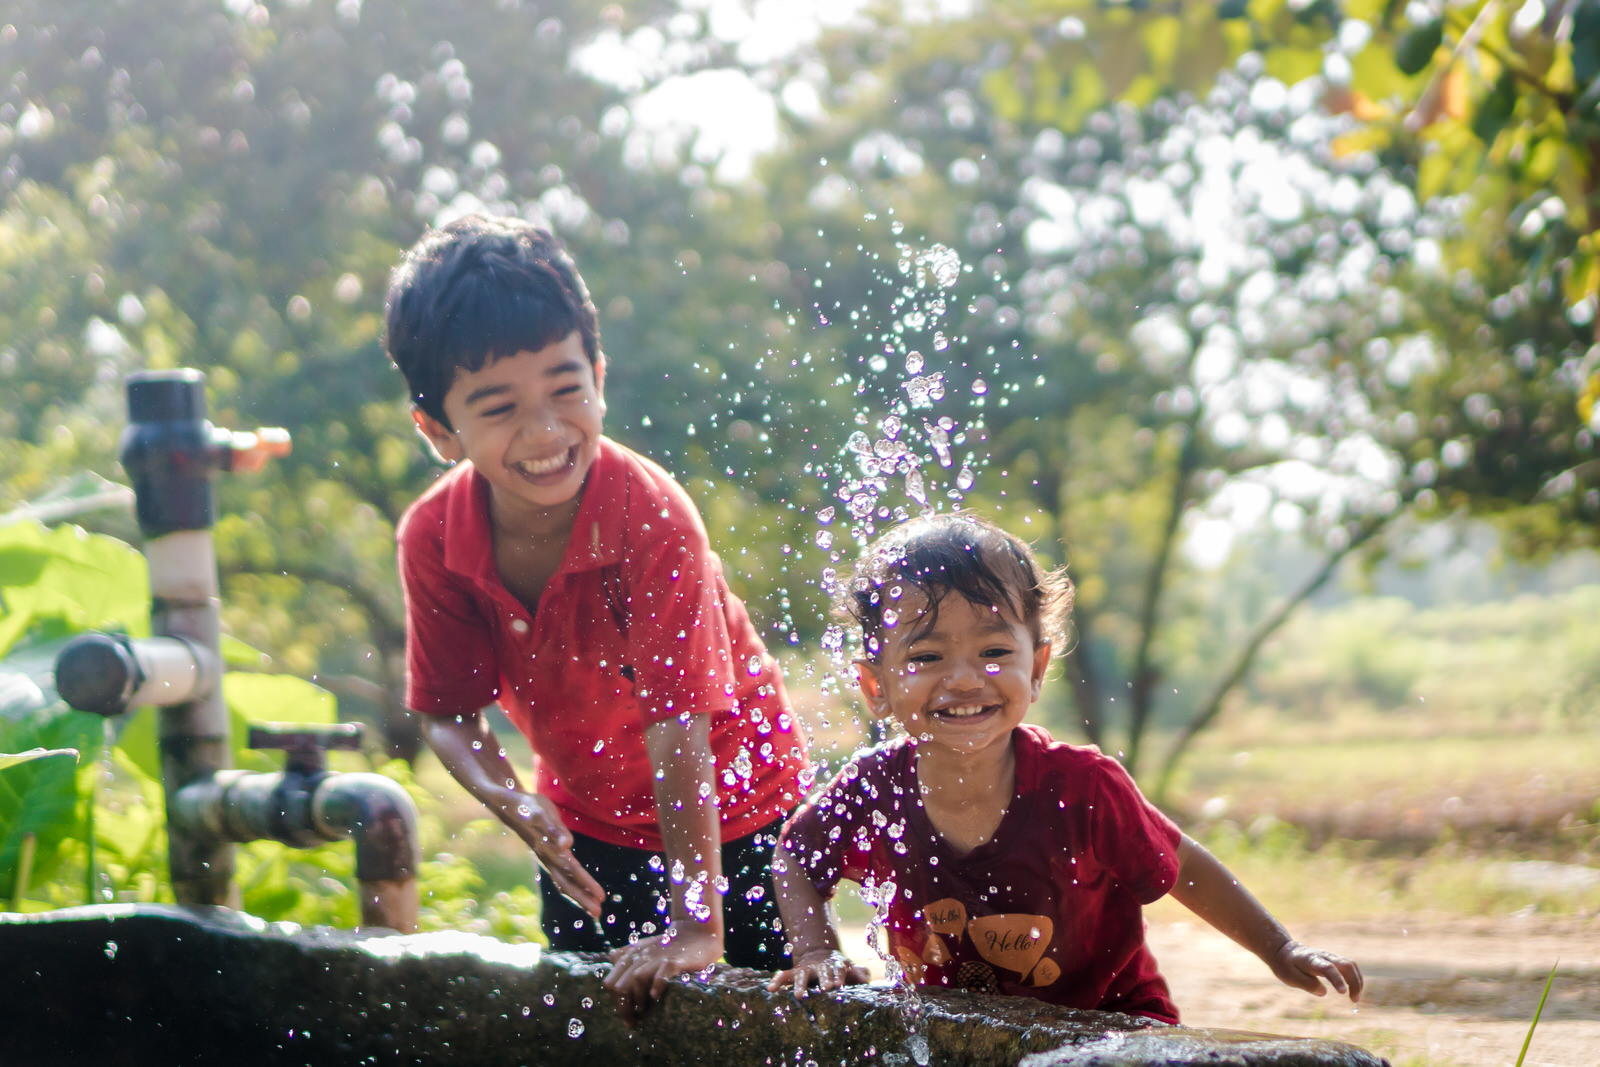 23122017-Boys-Playing-Water-Tank-294.jpg